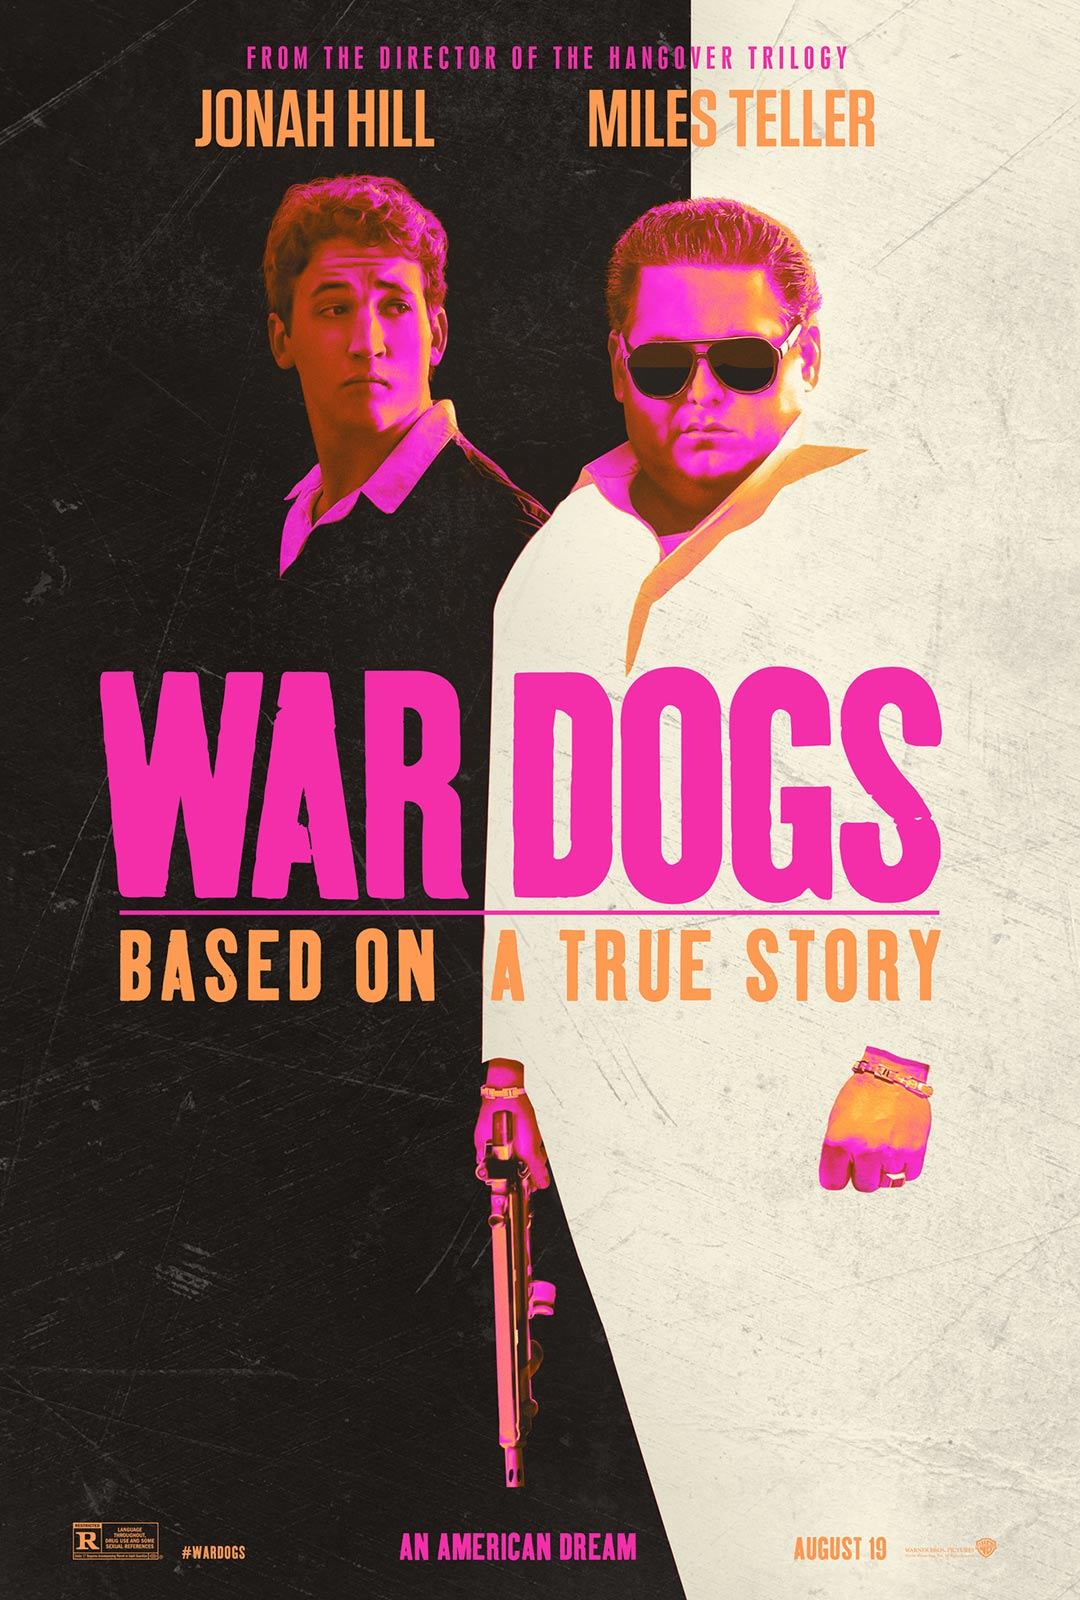 [War Dogs poster]